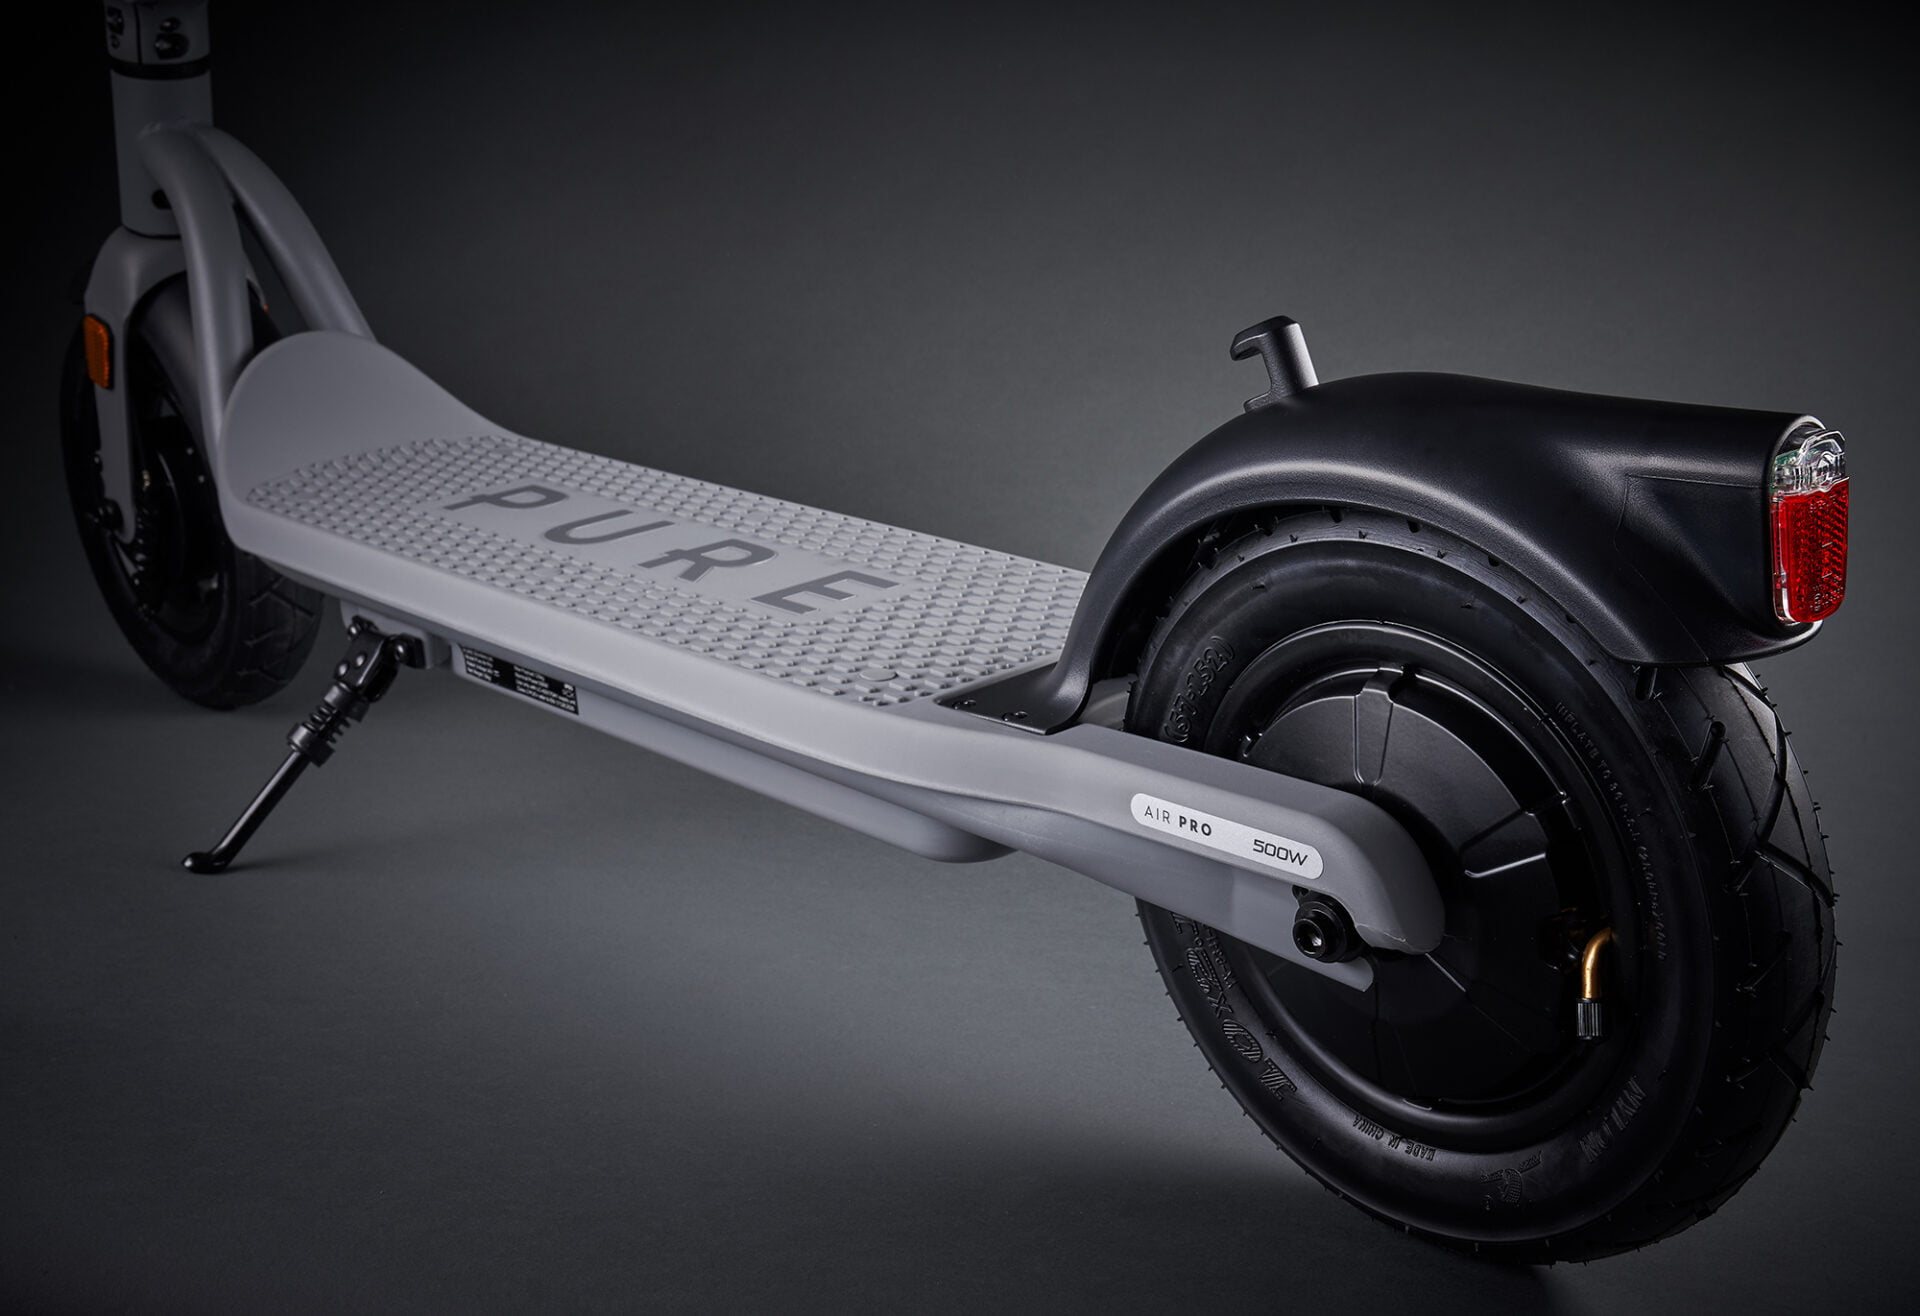 Creative photography electric scooter Grey Air Pro 500 rear wheel